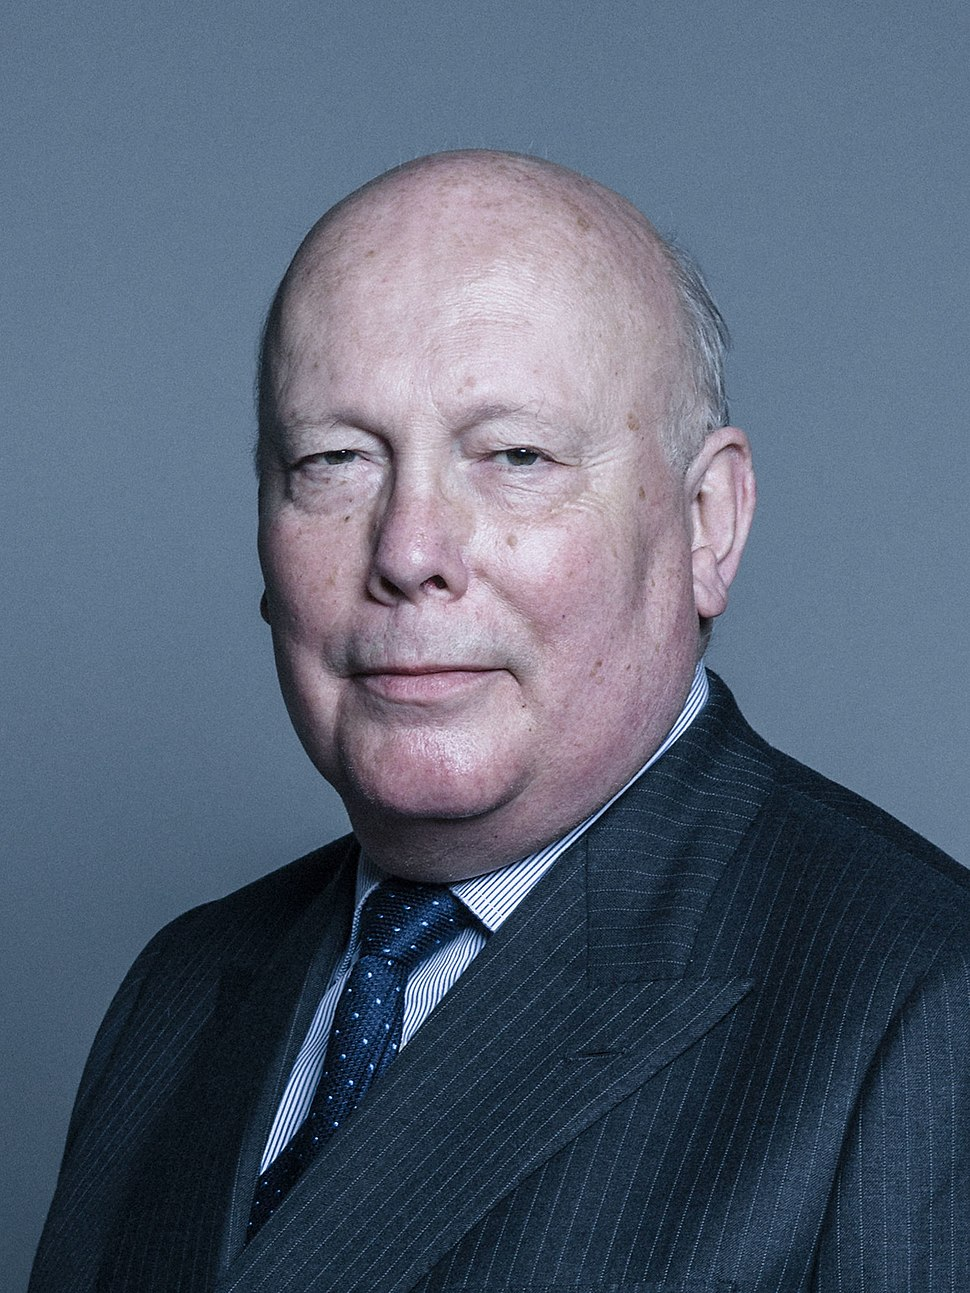 Official portrait of Lord Fellowes of West Stafford crop 2